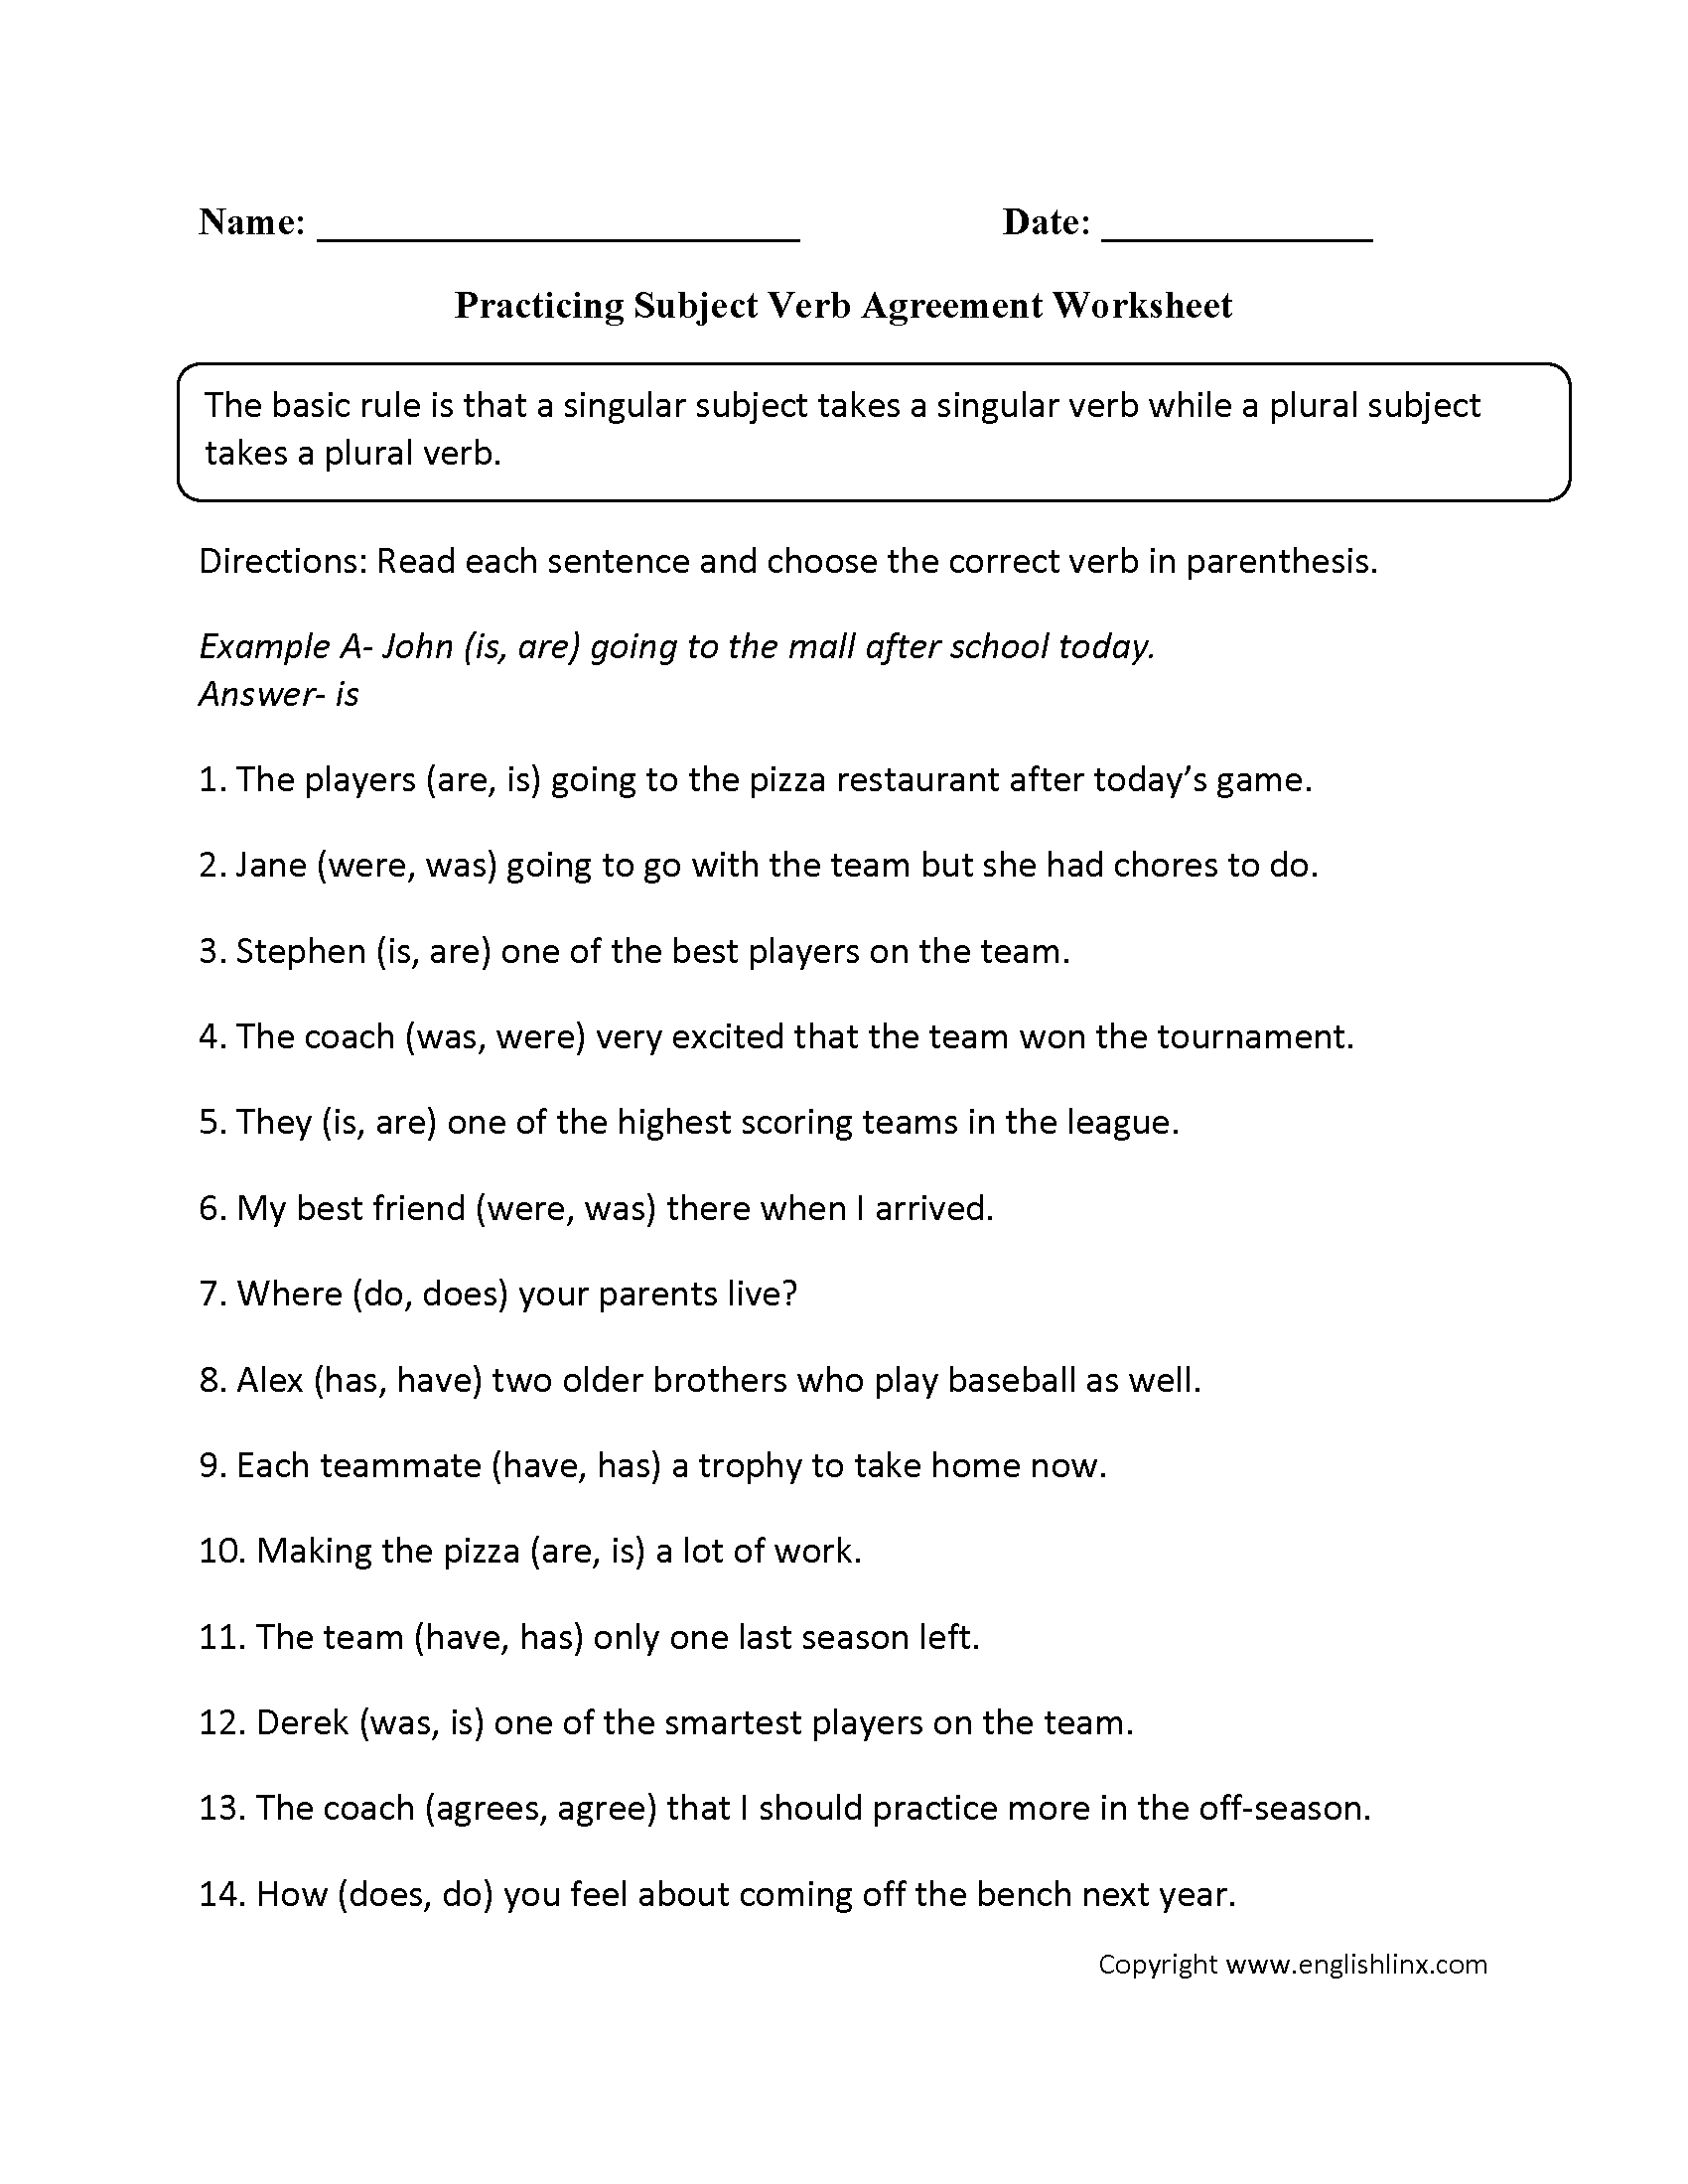 Practicing subject verb agreement worksheet language pinterest practicing subject verb agreement worksheet language pinterest subject verb agreement worksheets and language ibookread ePUb